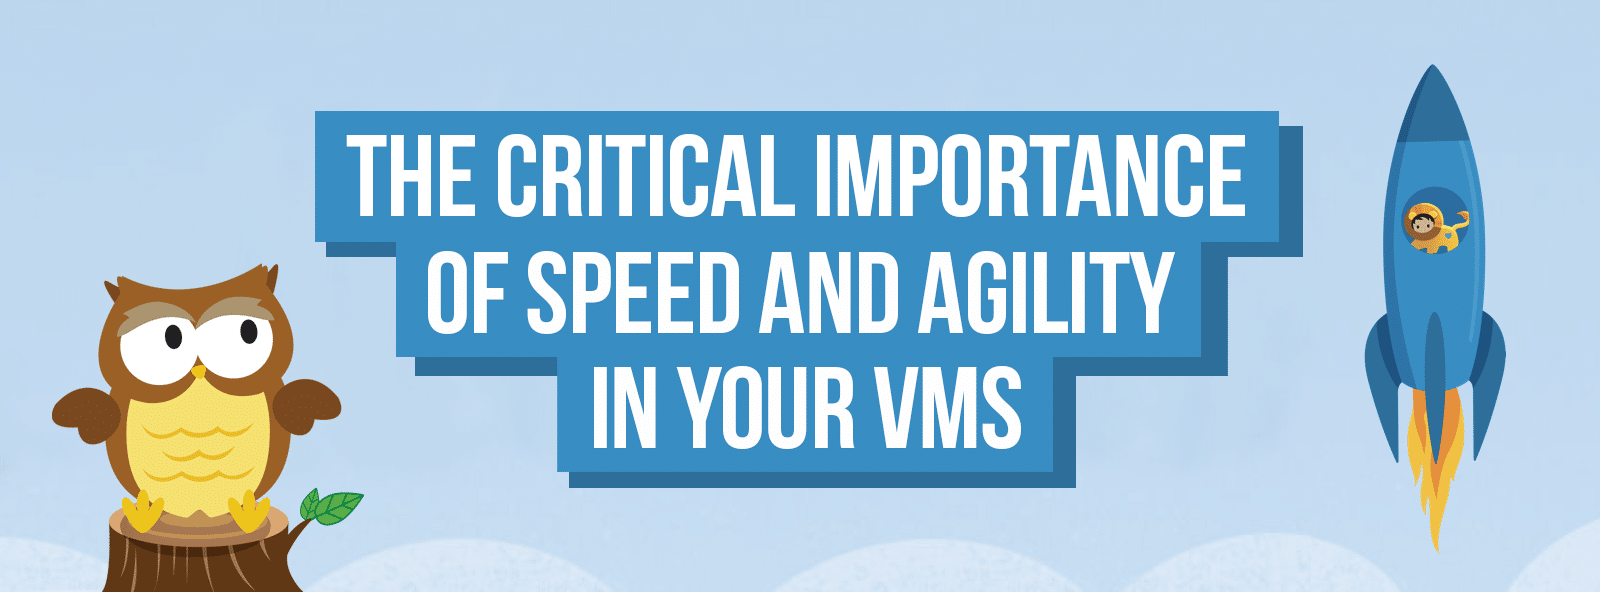 The critical importance of speed and agility in your VMS